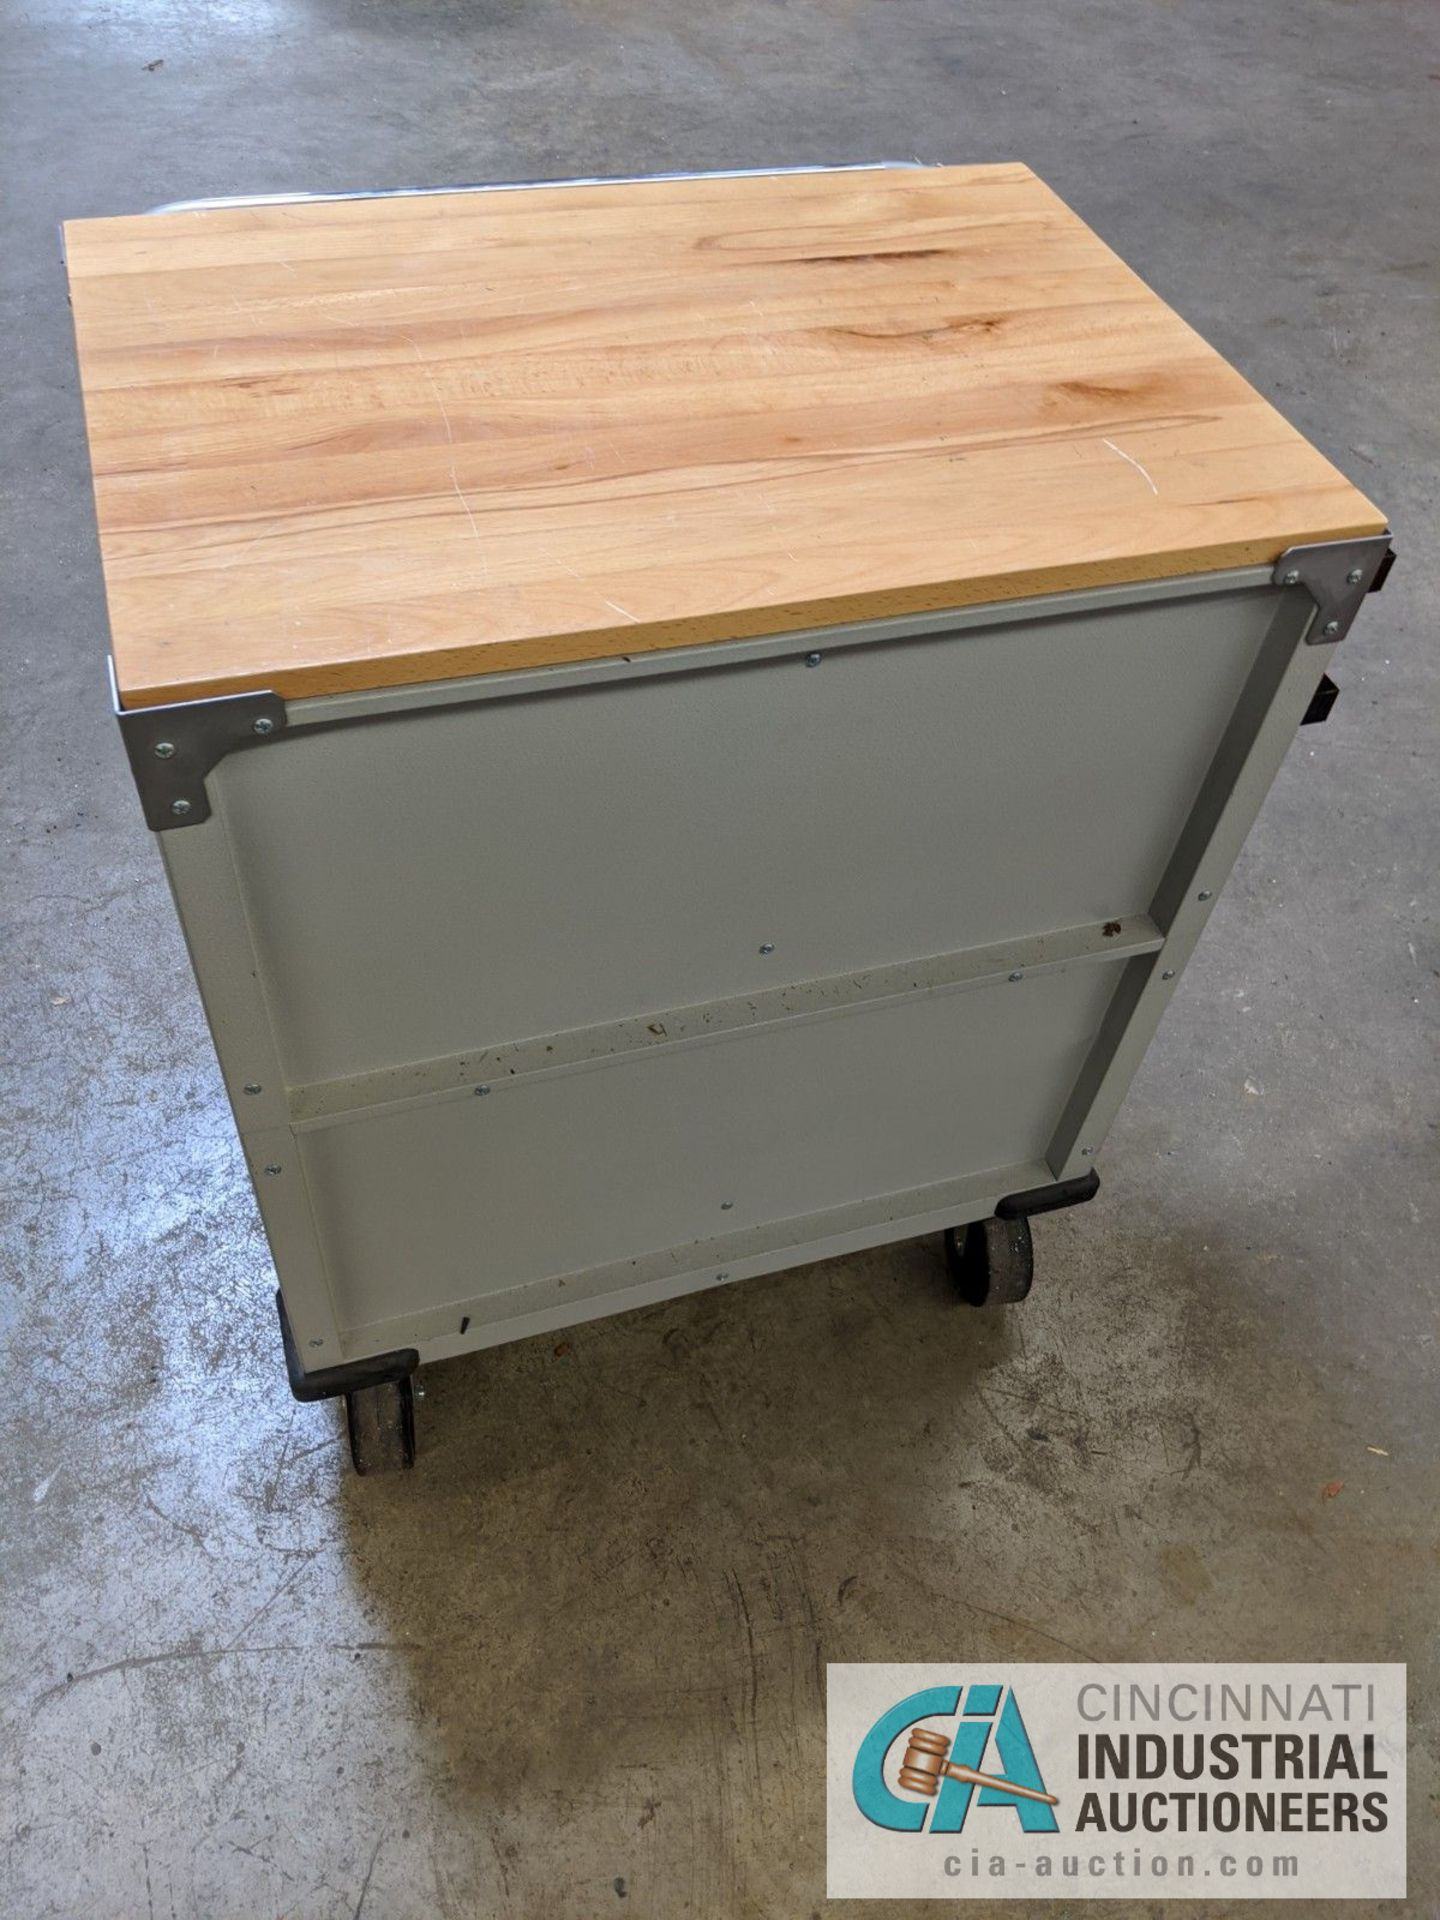 5-DRAWER PORTABLE BOX WITH CONTENTS - ASSORTED HAND TOOLS, MAPLE TOP - Image 2 of 7